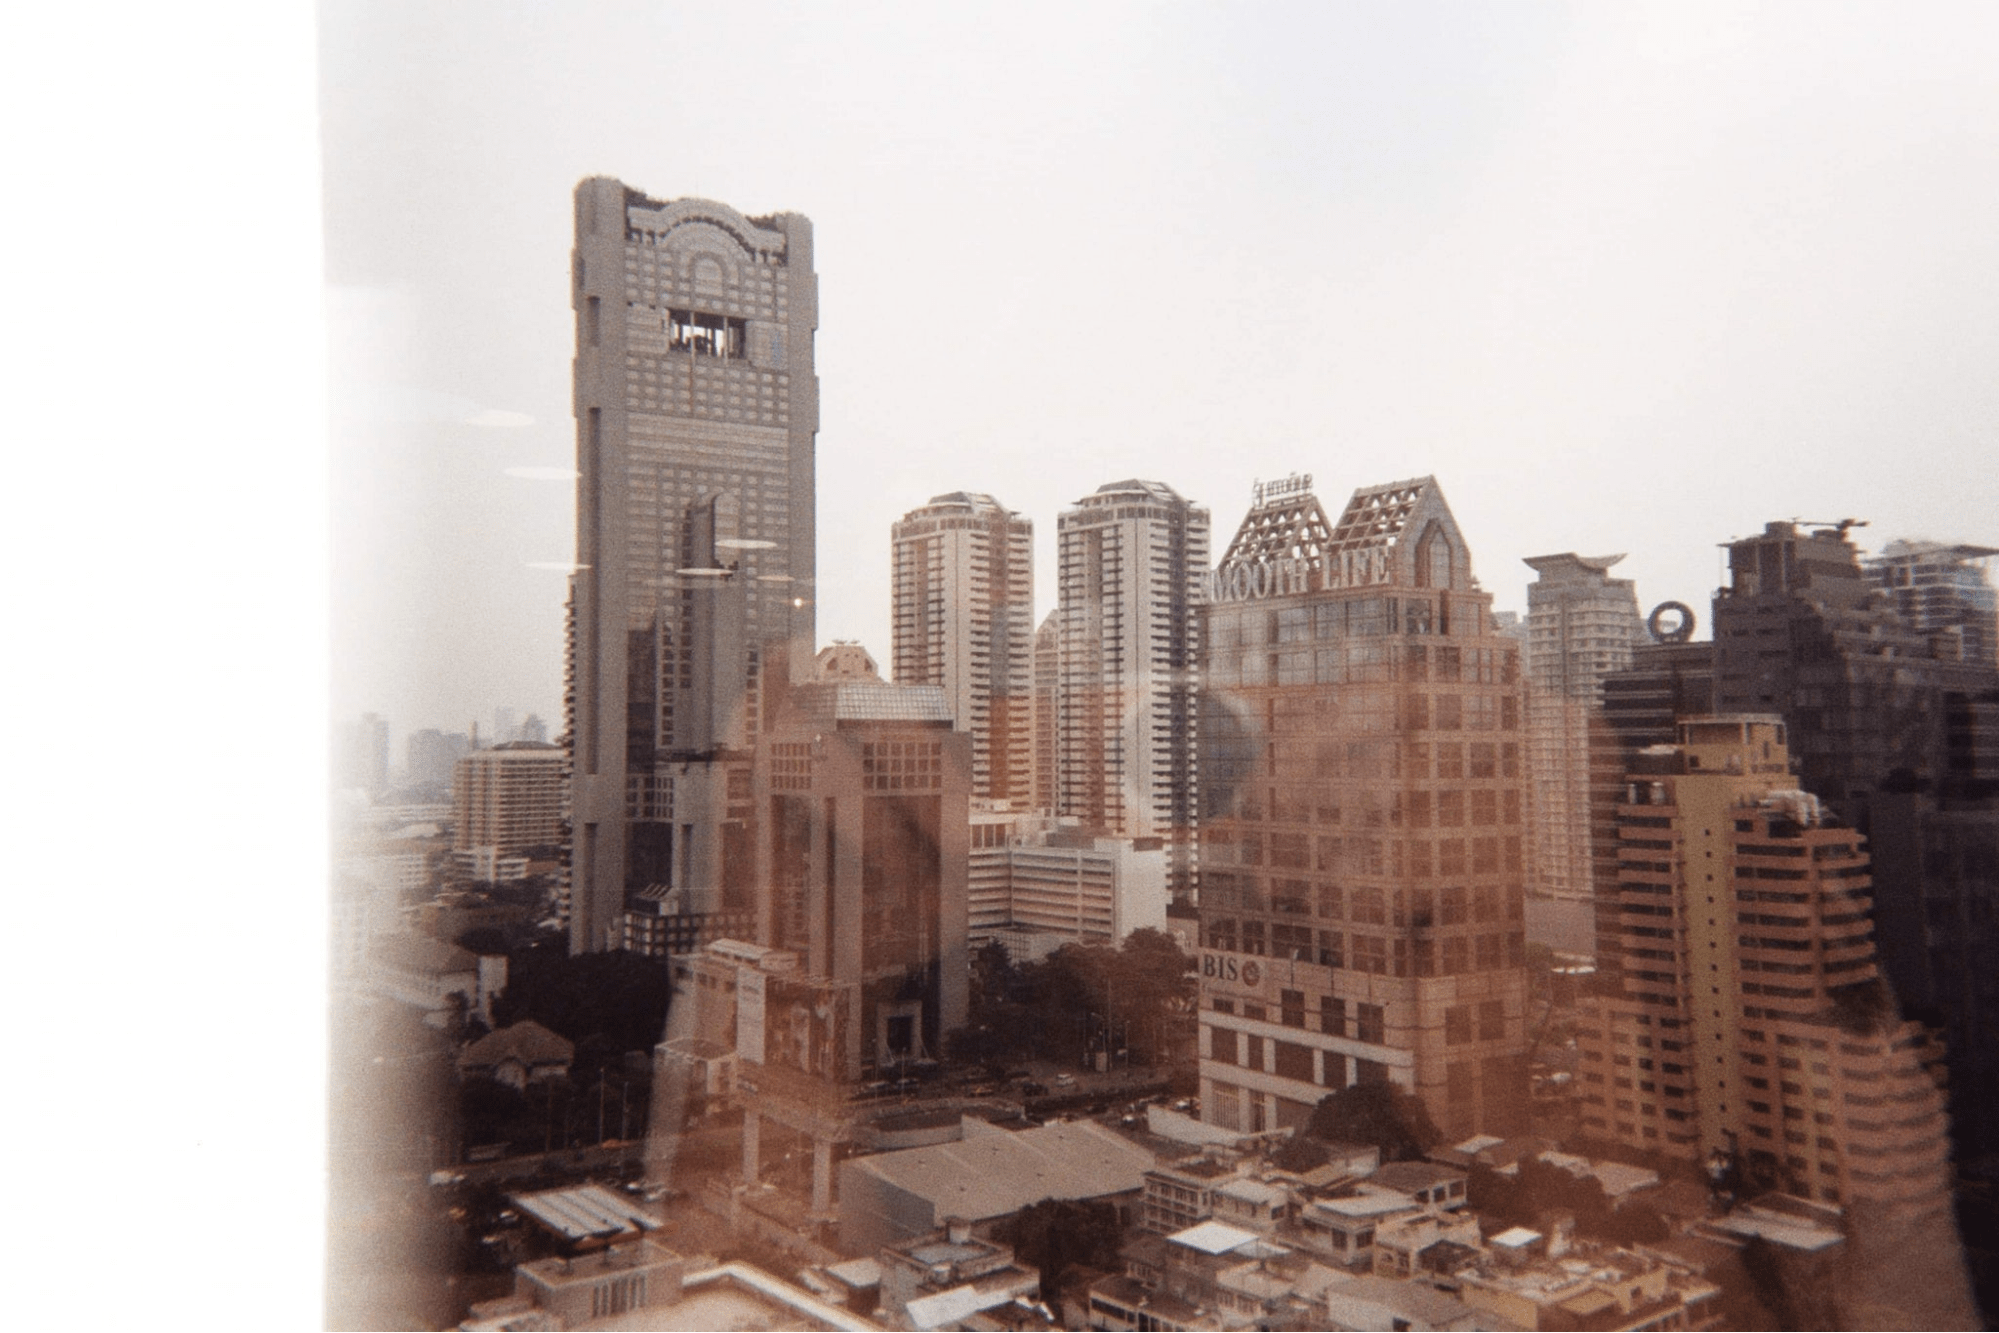 picture from film camera at 7-11